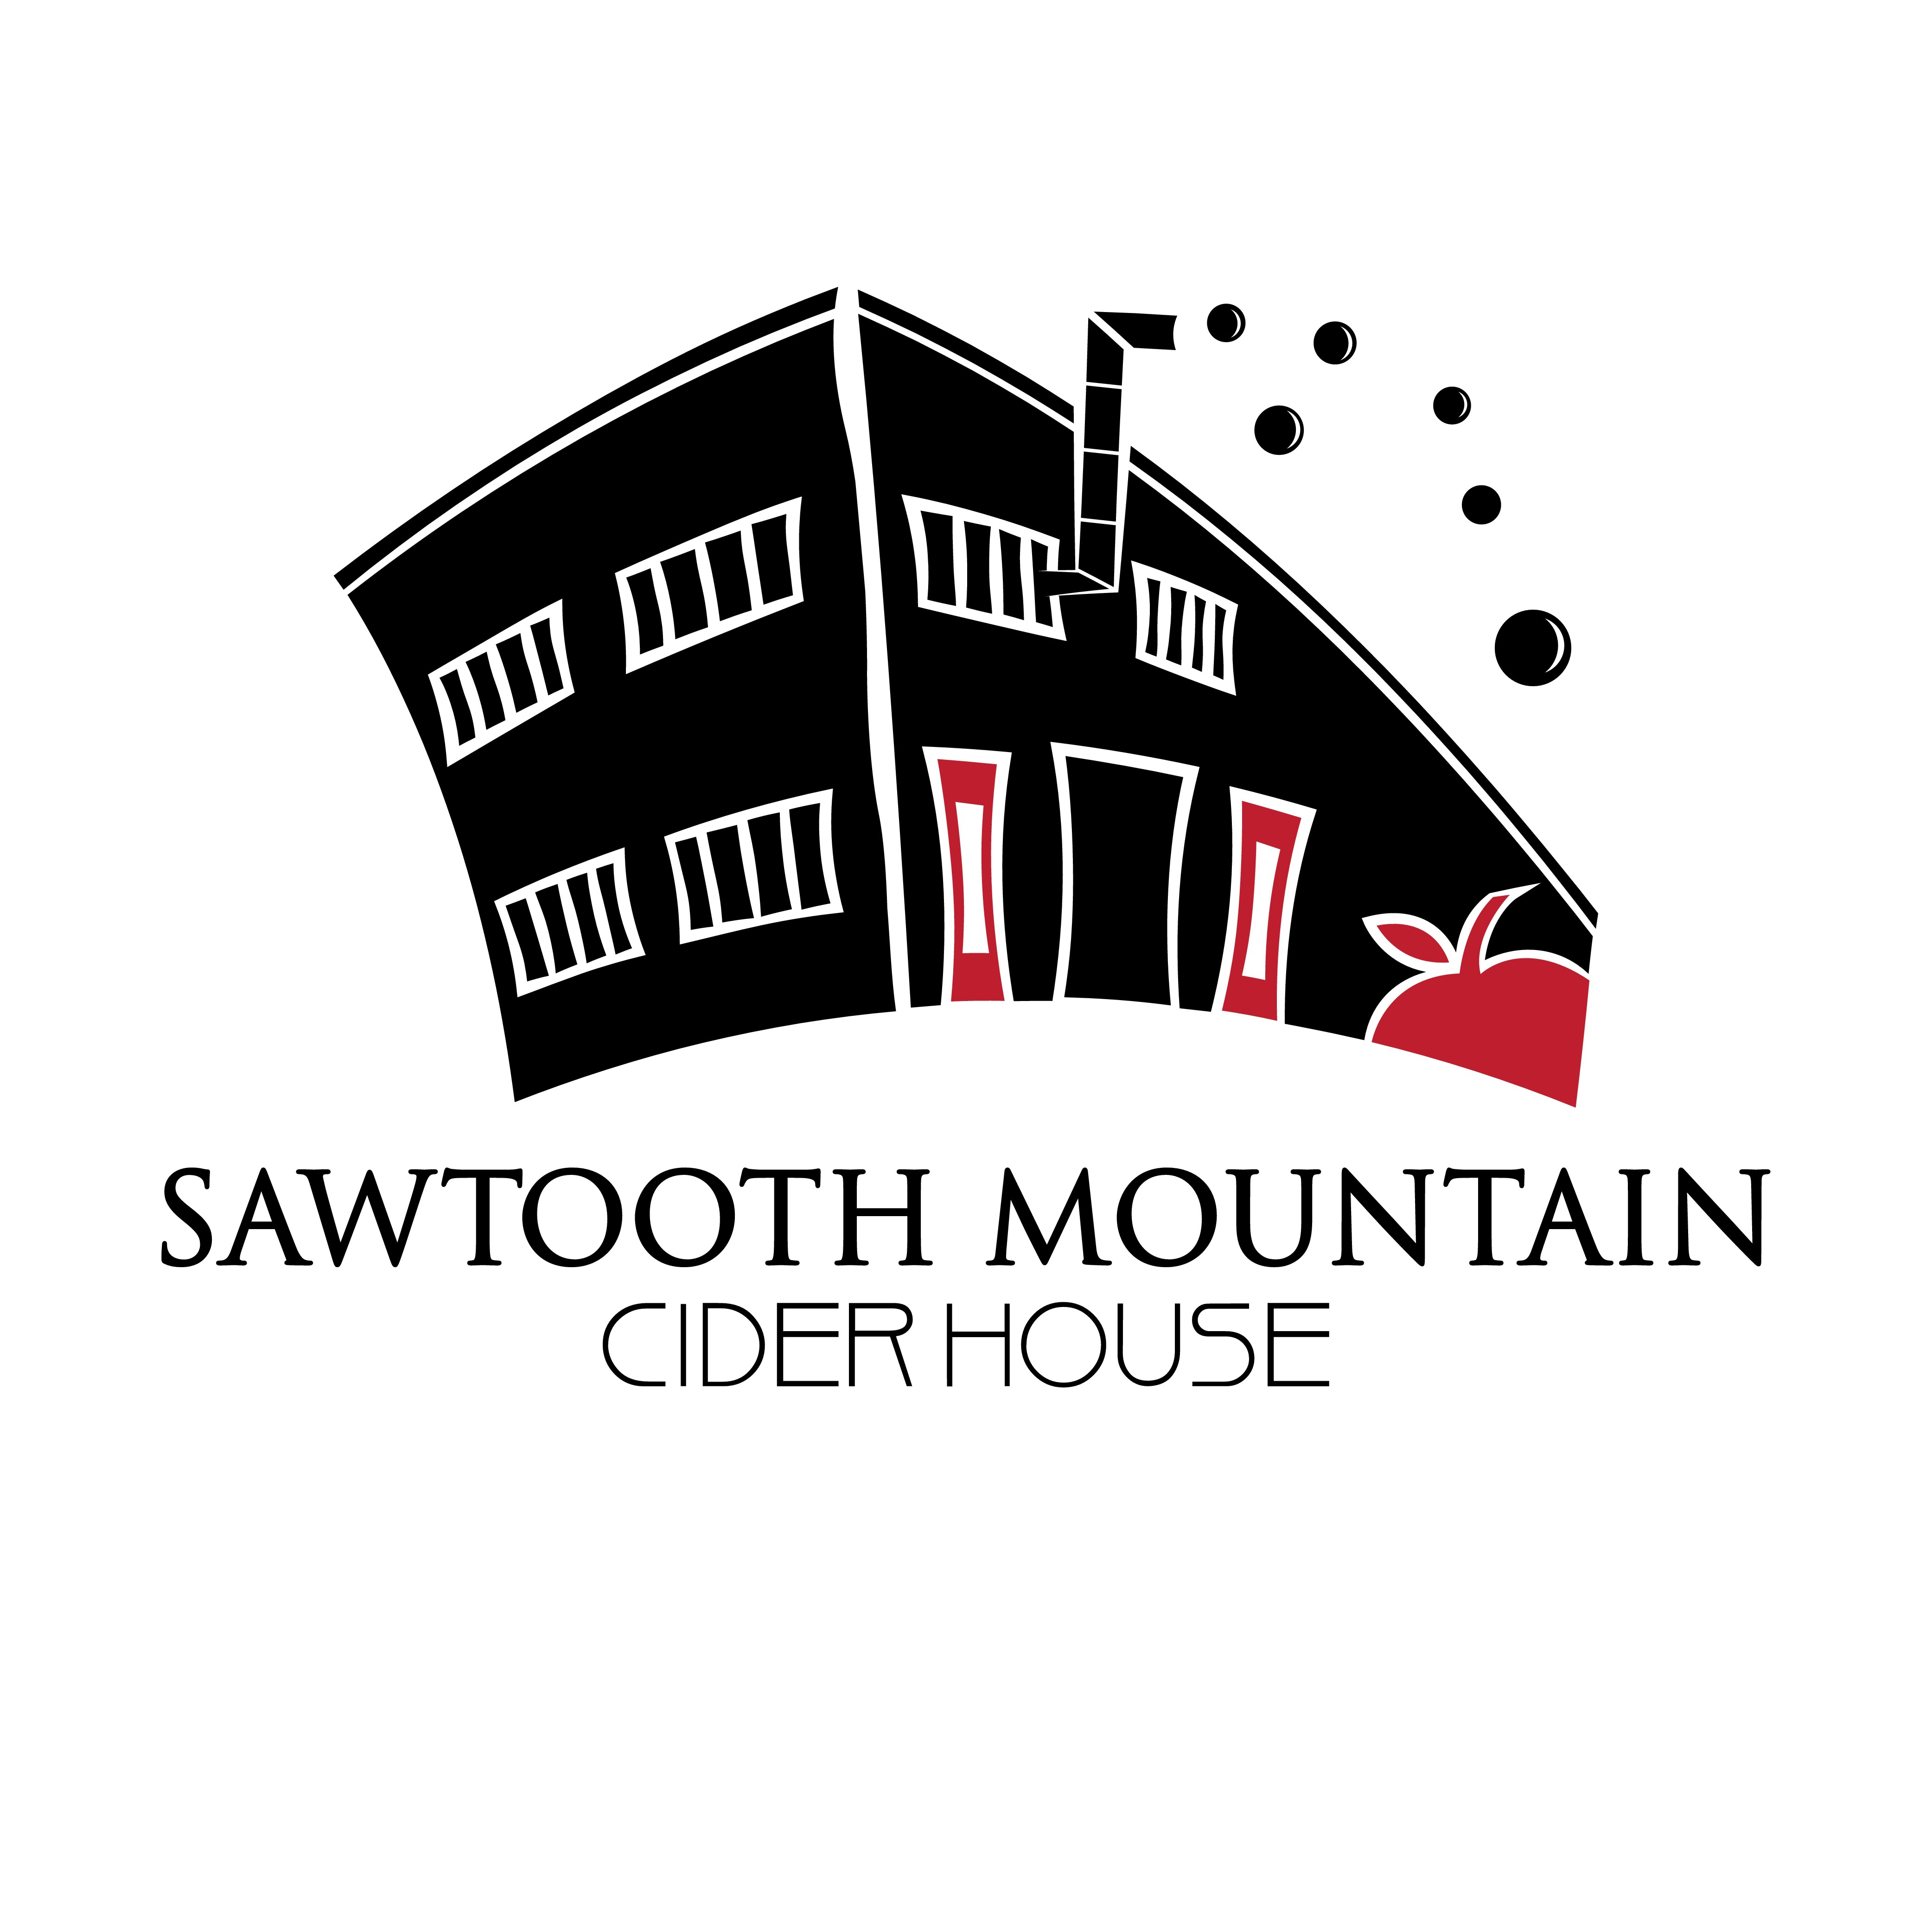 Sawtooth Mountain Cider House